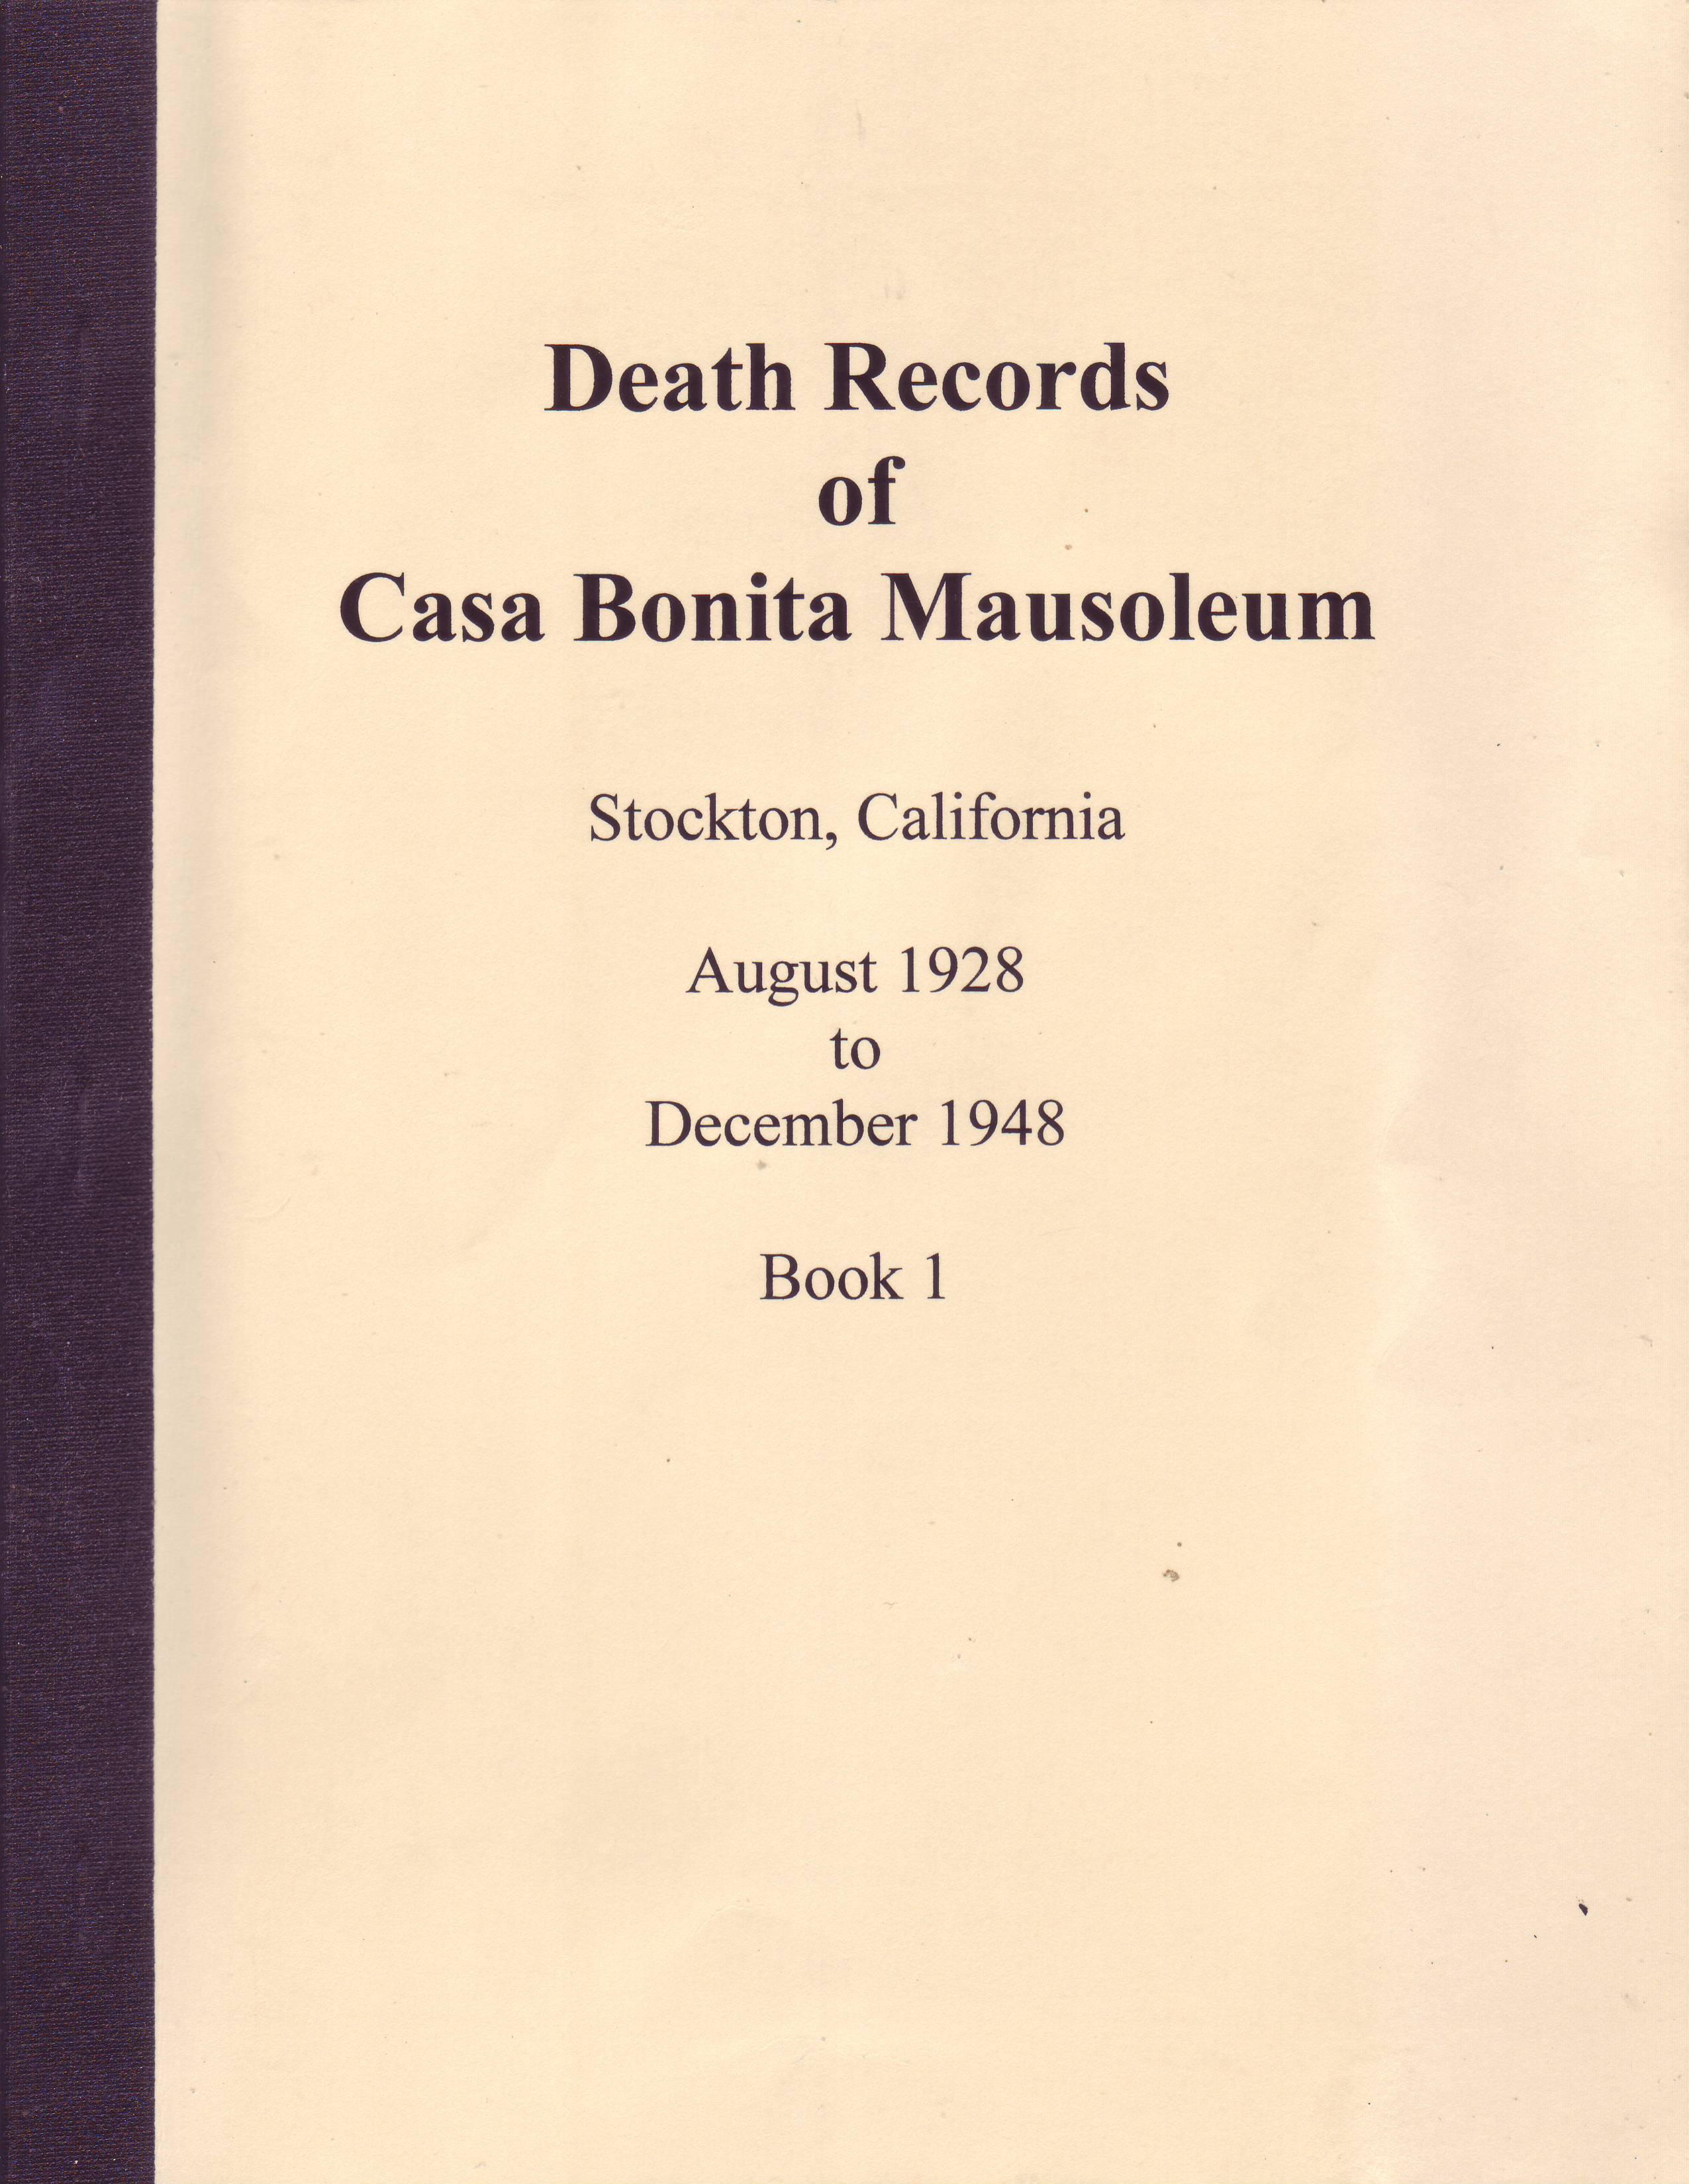 Death Records of Casa Bonita Mausoleum, Stockton, California, August 1928 to December 1948, Book 1